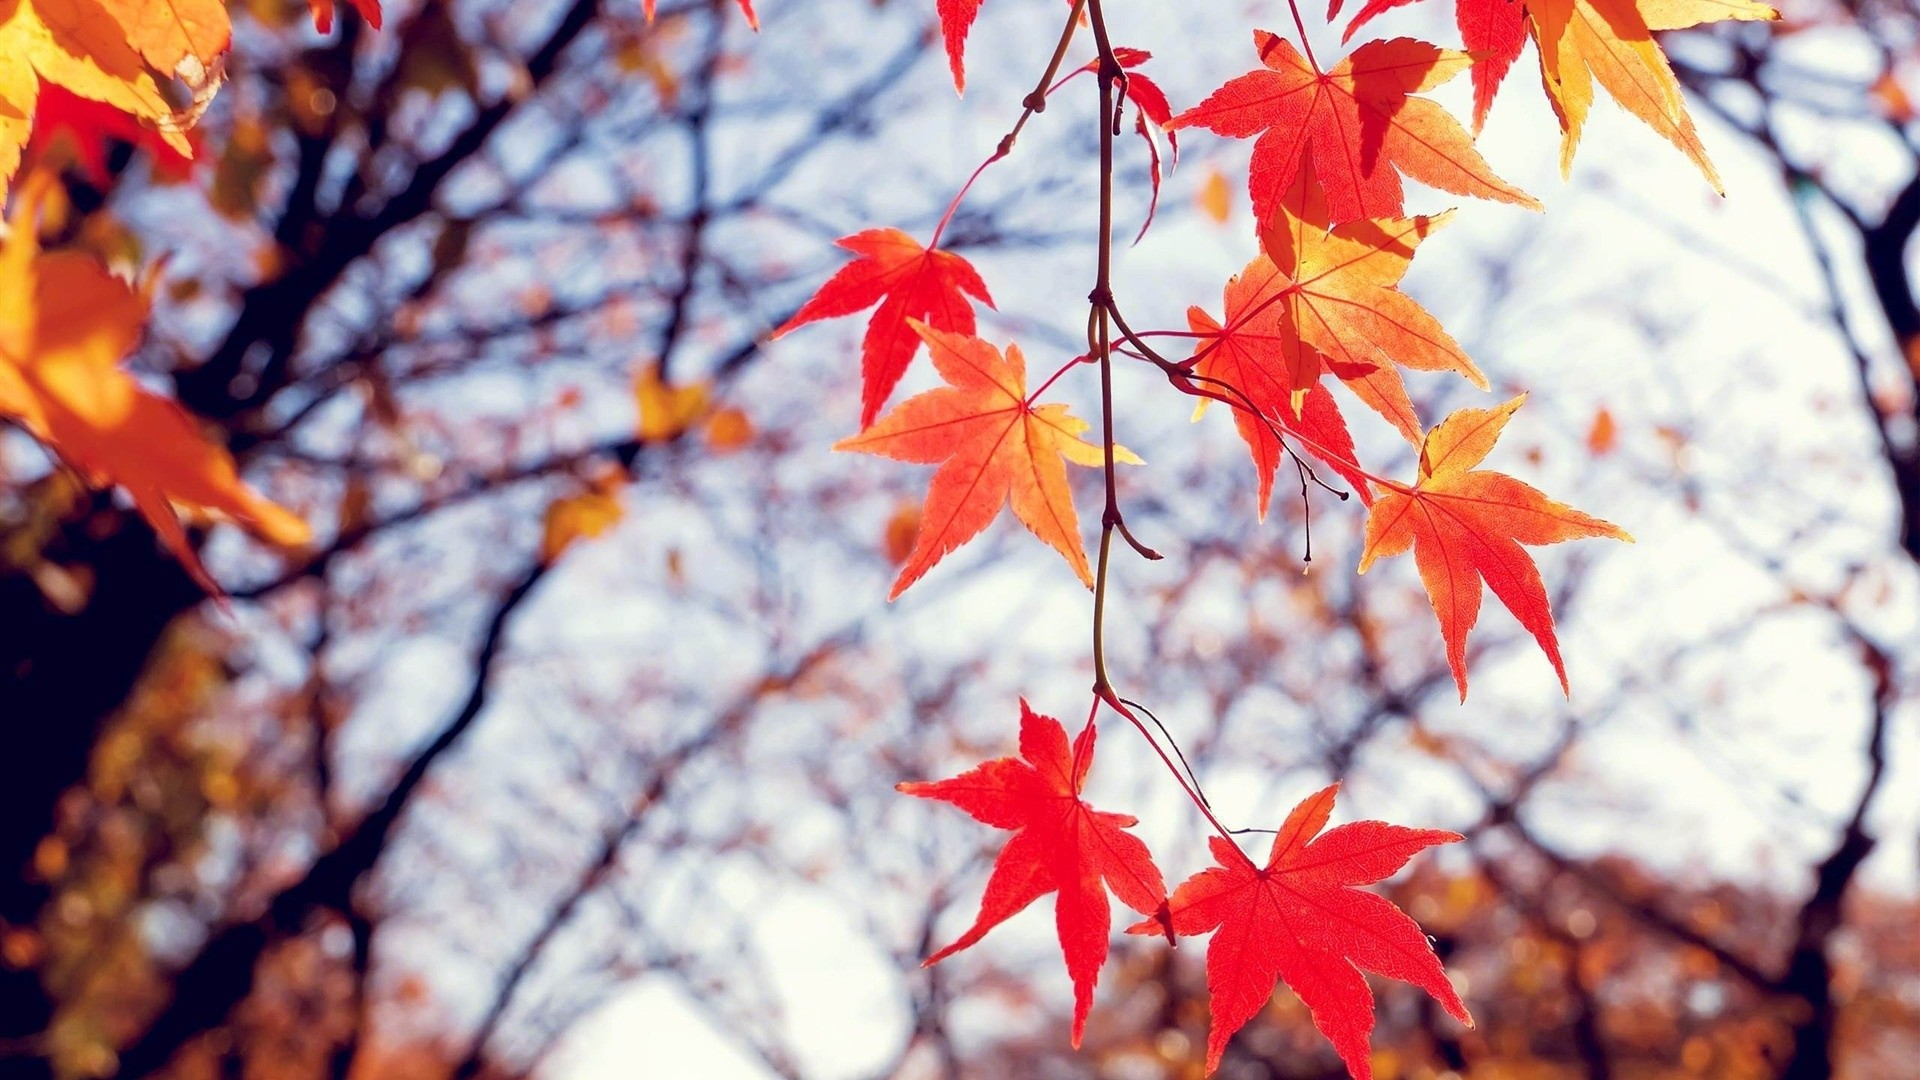 Fall Leaves Wallpaper Picture hd